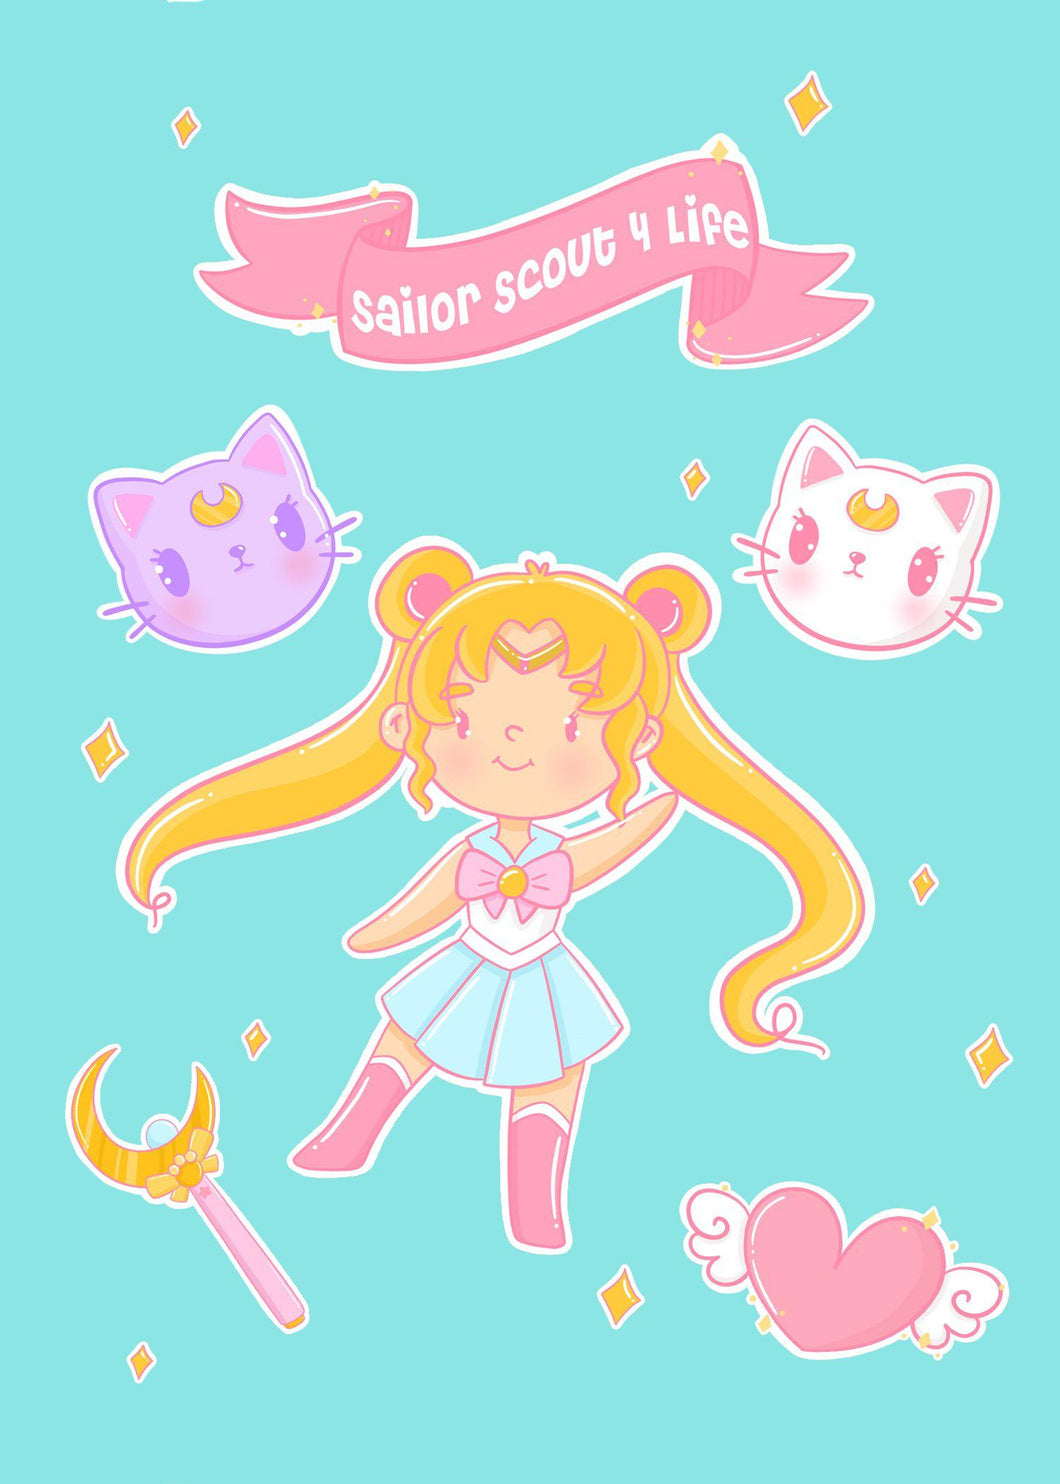 Sailor Scout 4 Life Stickers